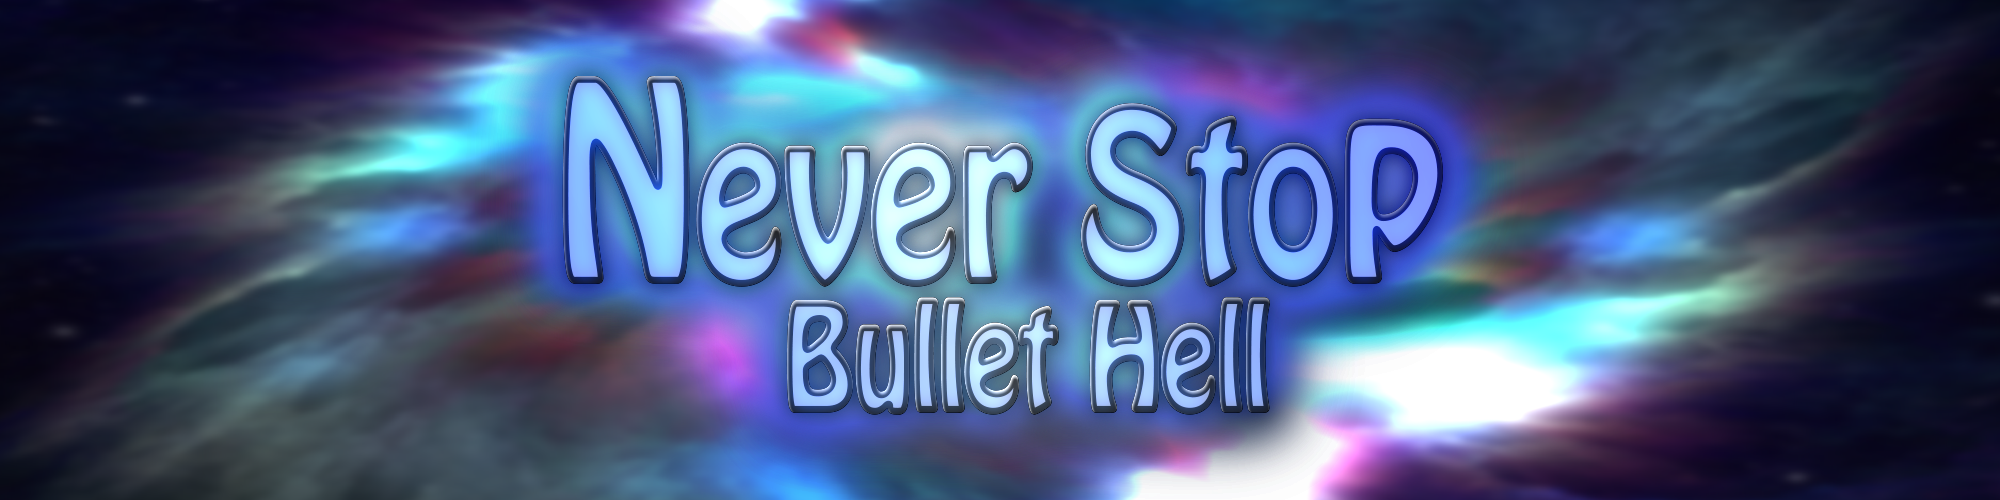 Never Stop - Bullet Hell